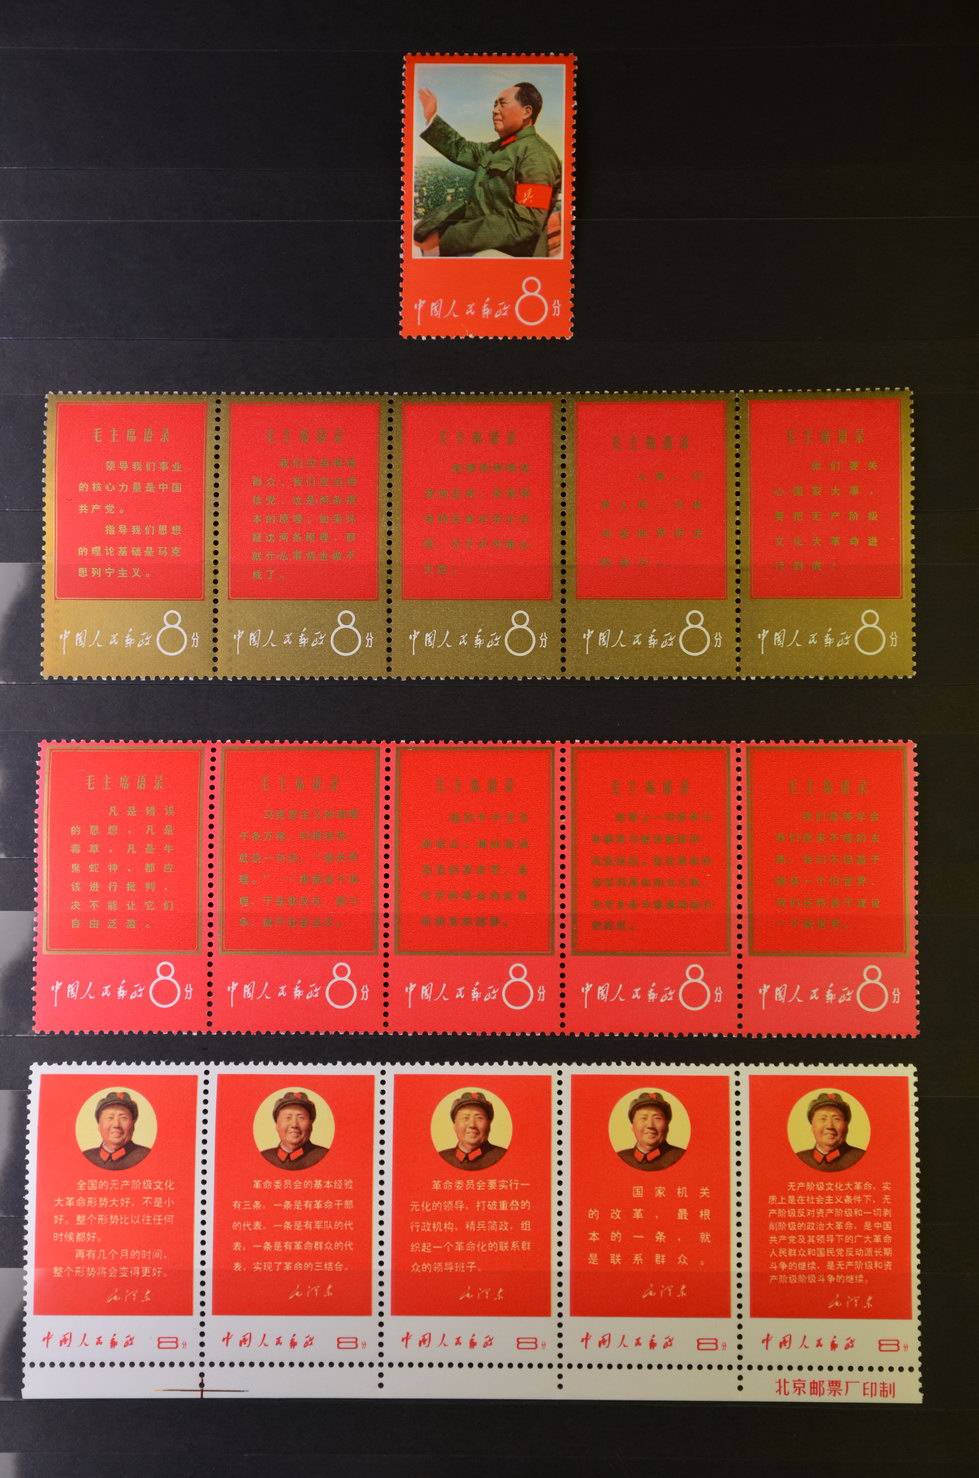 Briefmarken mit Mao aus China